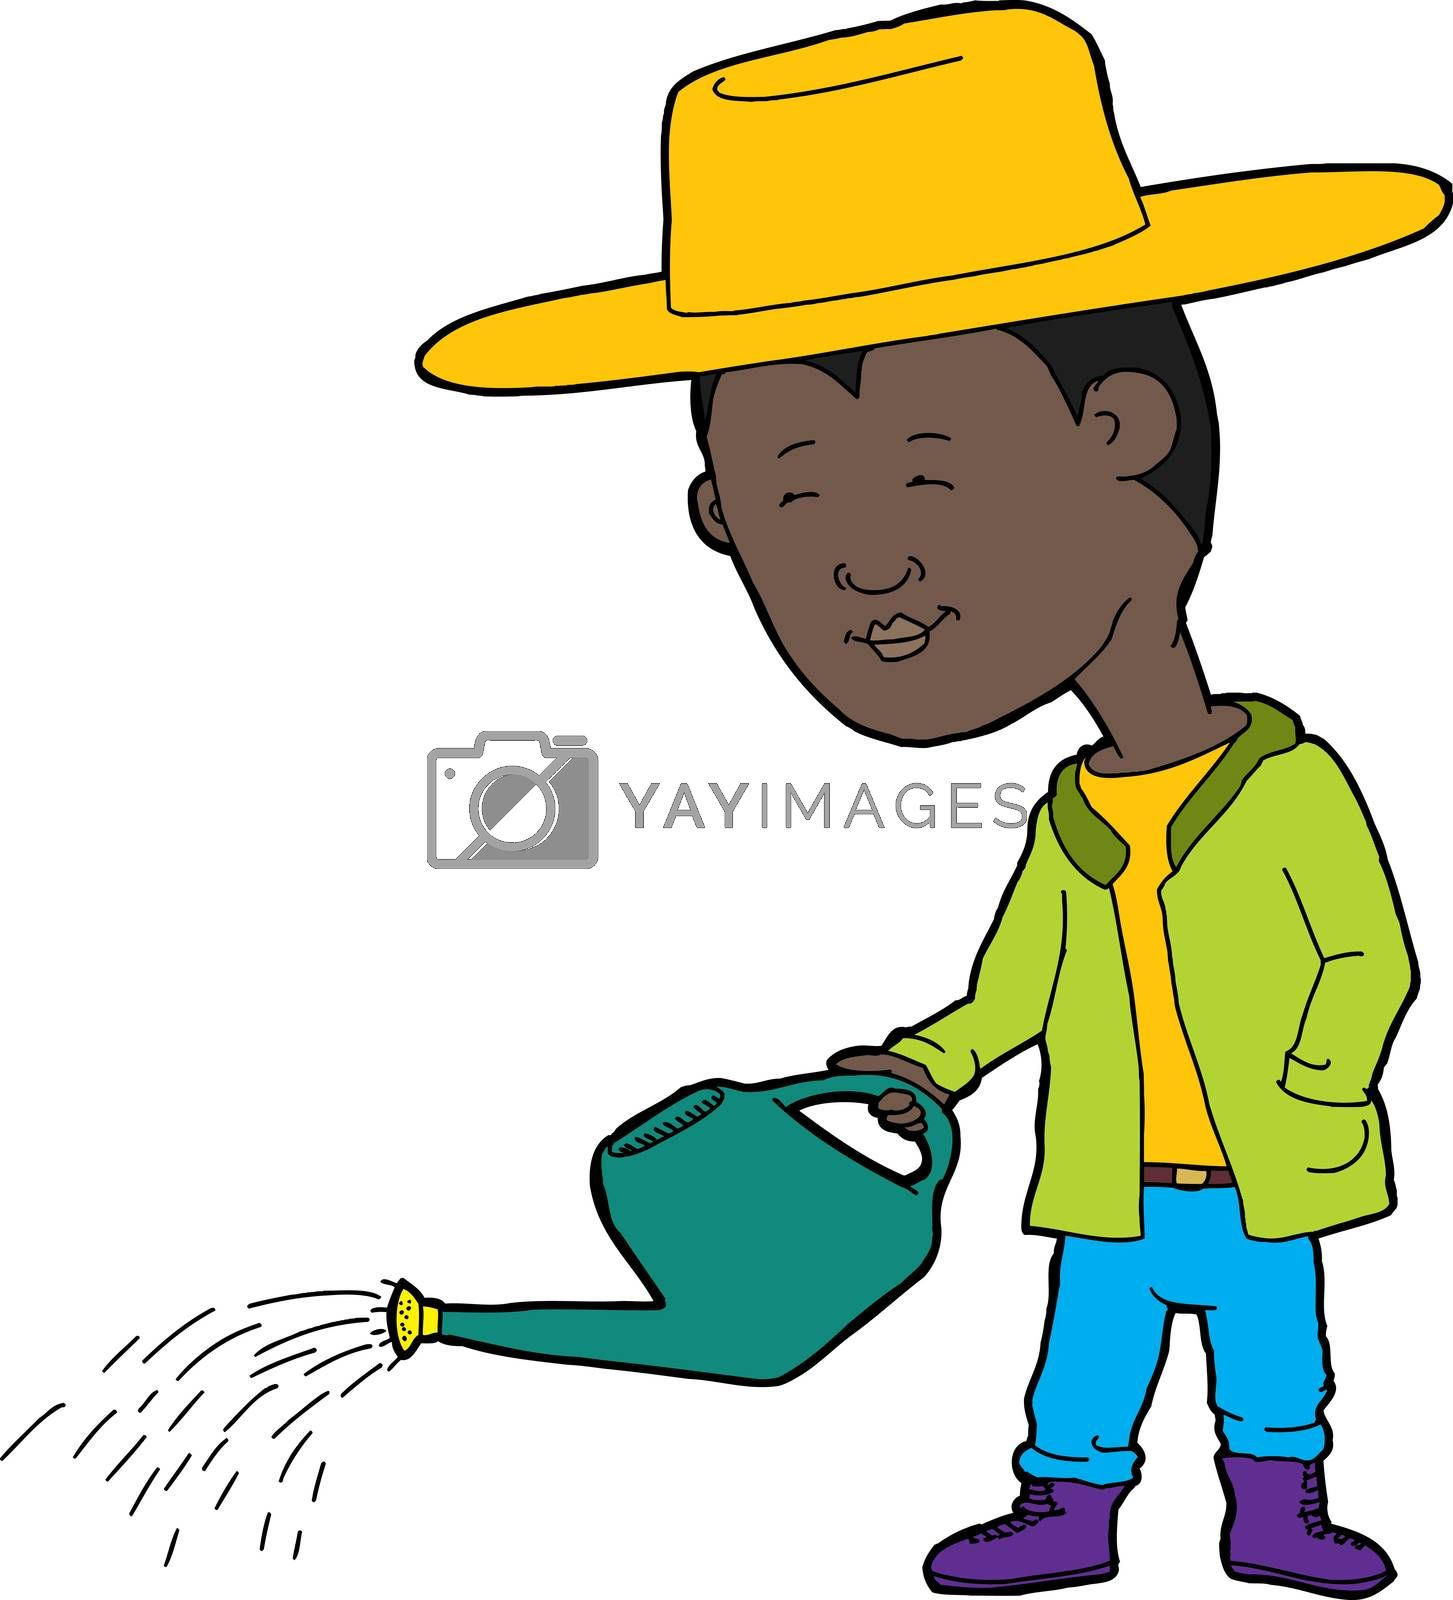 Royalty free image of Gardener with Watering Can by TheBlackRhino